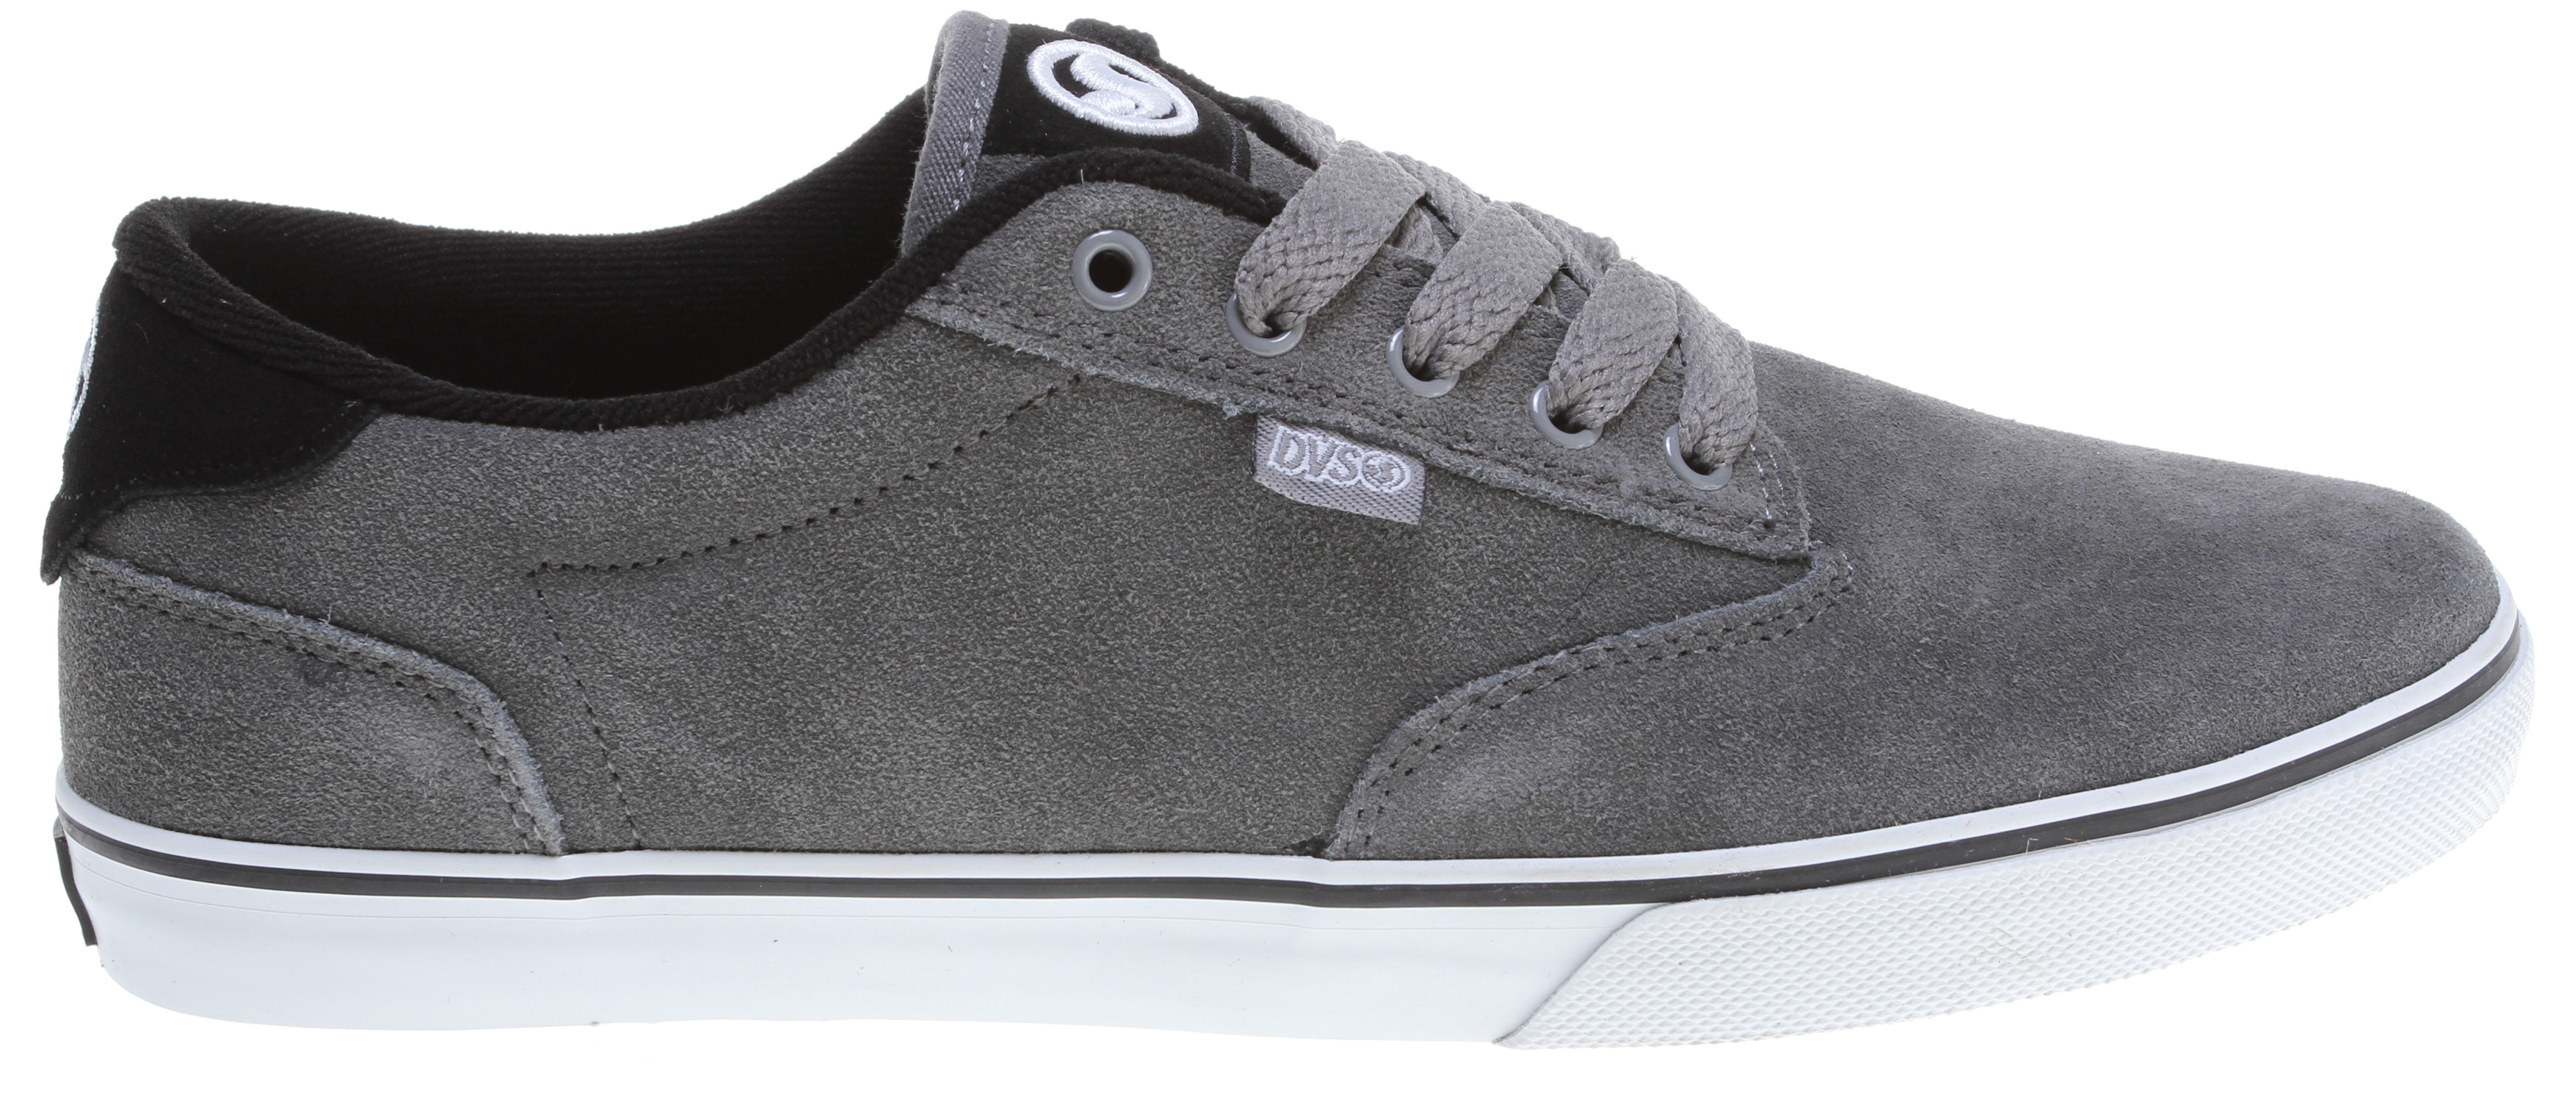 Skateboard Key Features of the DVS Daewon 12'er Skate Shoes: Daewon Song Signature Series Suede/Canvas Upper Material Slim Fitting Silhouette Perforated Tongue For Breathability Highly Flexible Lasting Board Non-Slip Vulcanized Outsole - $39.95